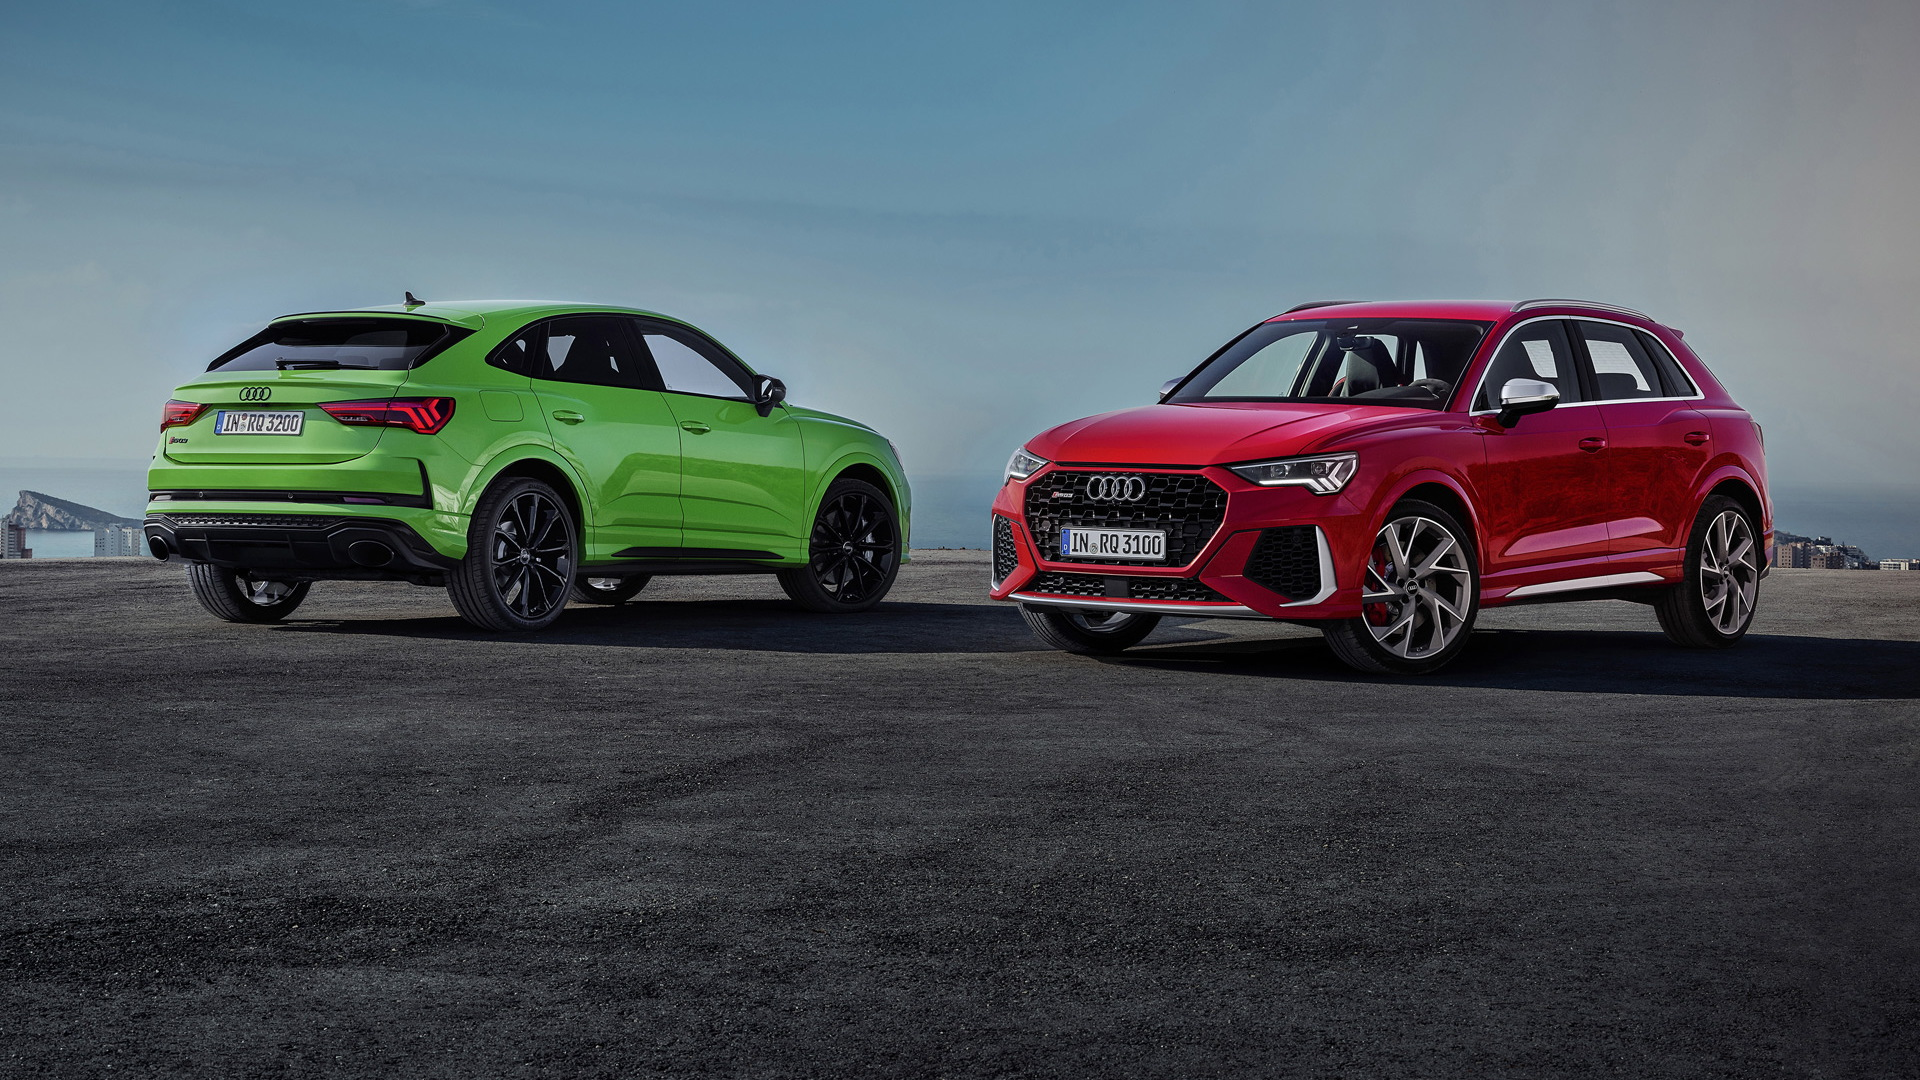 Audi's RS Q3 reborn with upgraded five-cylinder engine